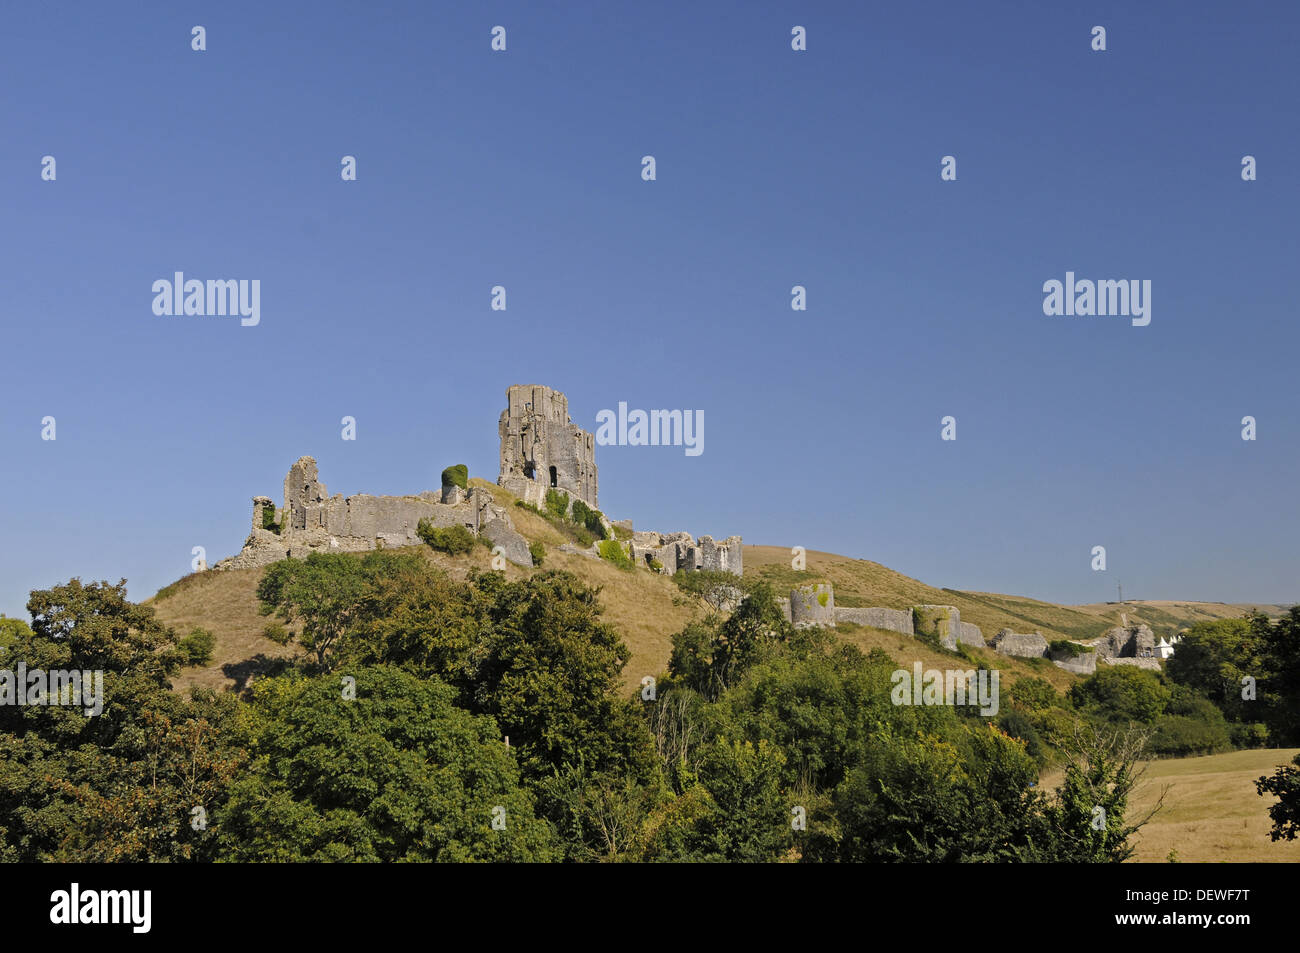 View over trees to ruins of Corfe Castle with town of Corfe in background , Isle of Purbeck Dorset England Stock Photo